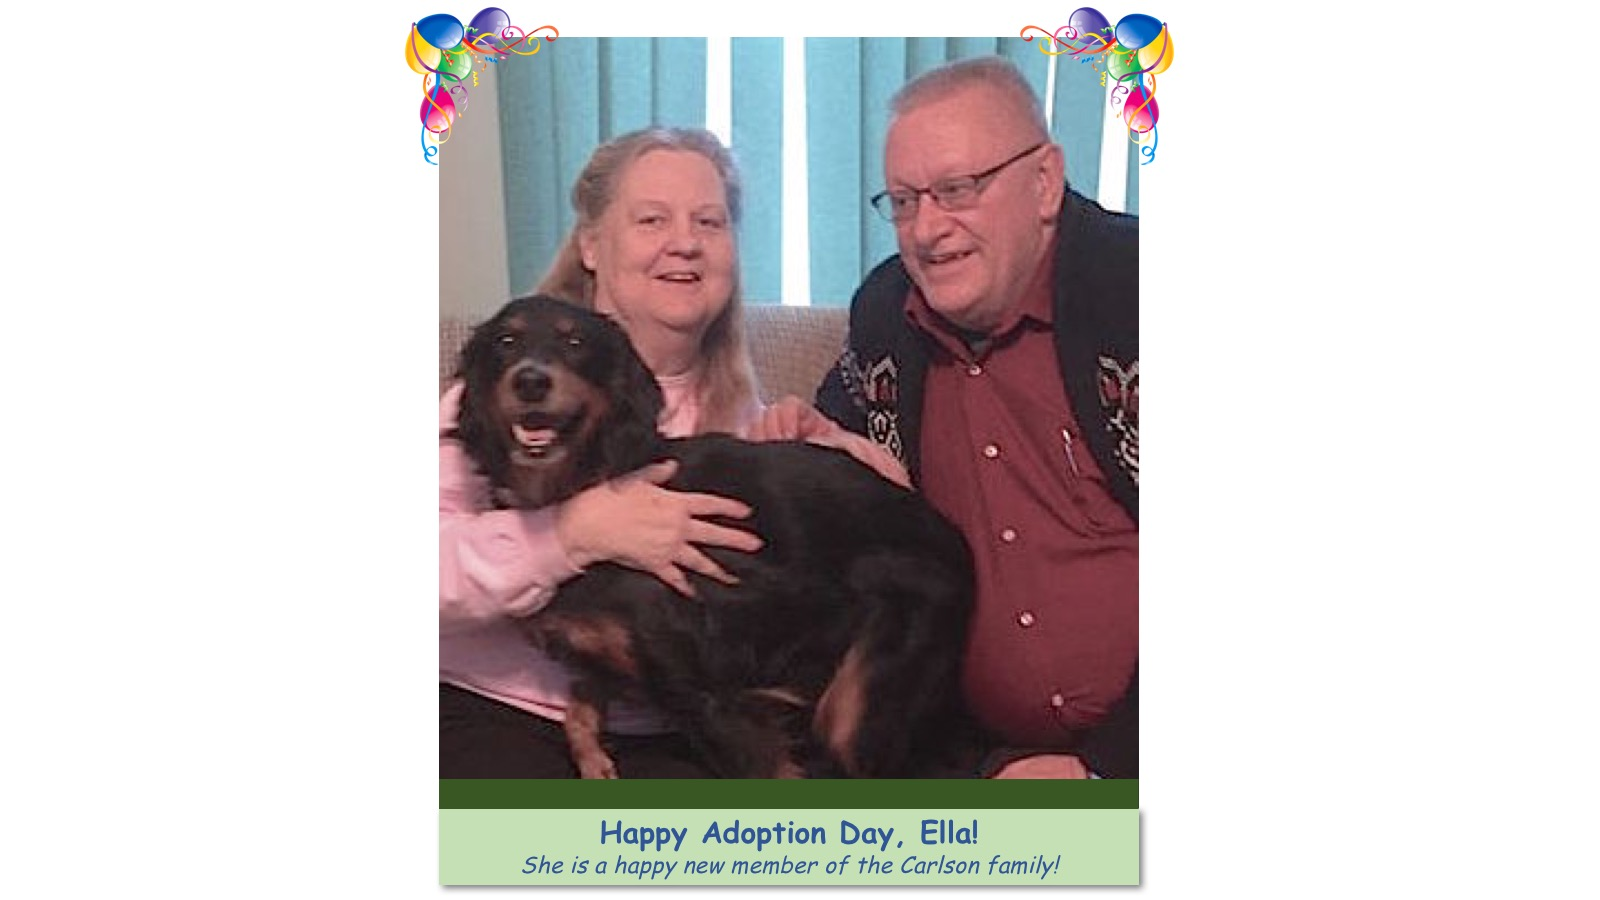 Ella_Adoption_photo.jpg